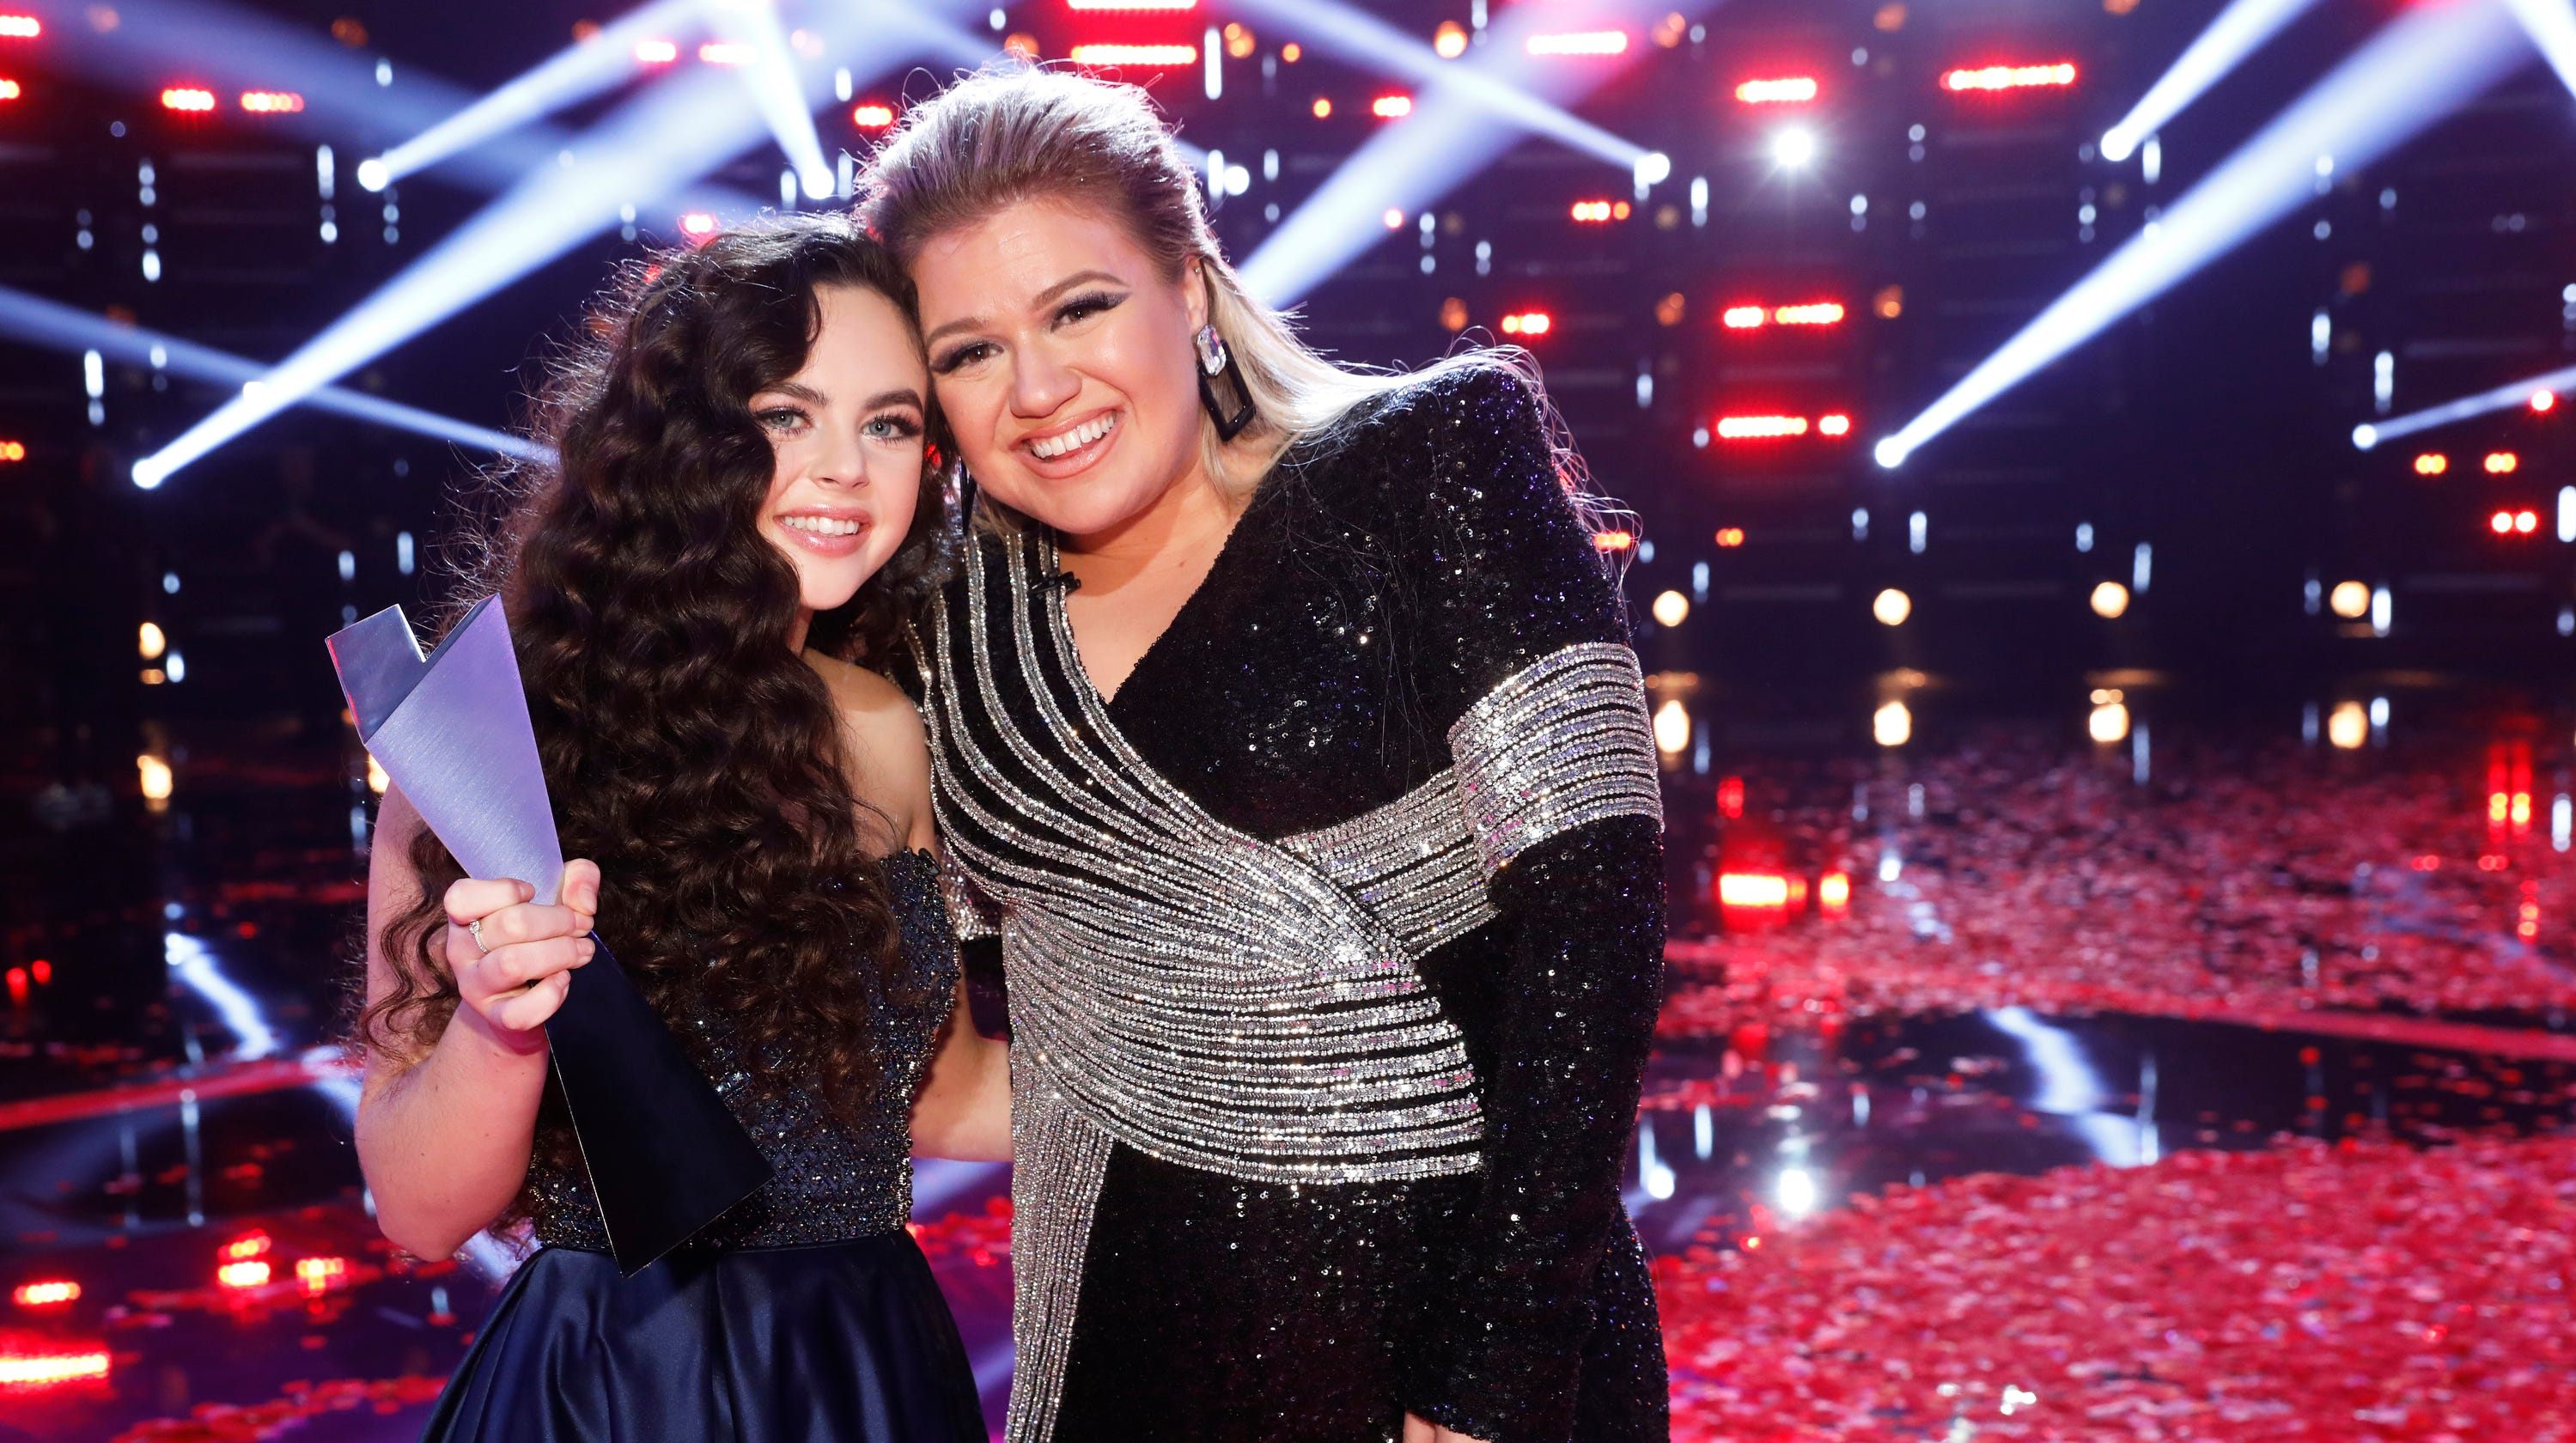 Chevel Shepherd, left, and her coach, Kelly Clarkson, stand on the confetti-covered stage of 'The Voice' minutes after Shepherd was named the Season 15 champion.